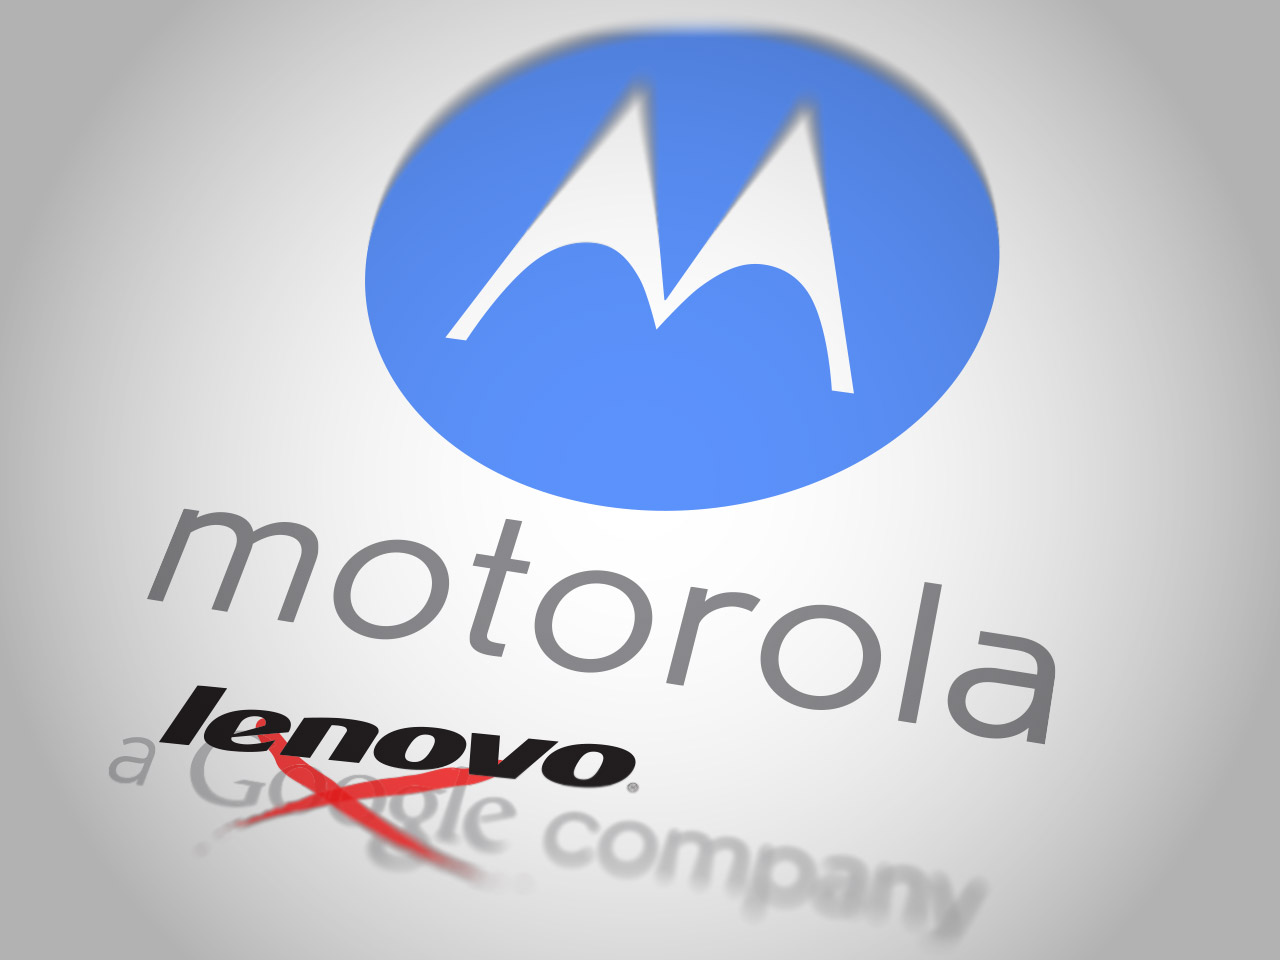 lenovo to buy motorola mobility from google for 2 91 billion techcrunch lenovo to buy motorola mobility from